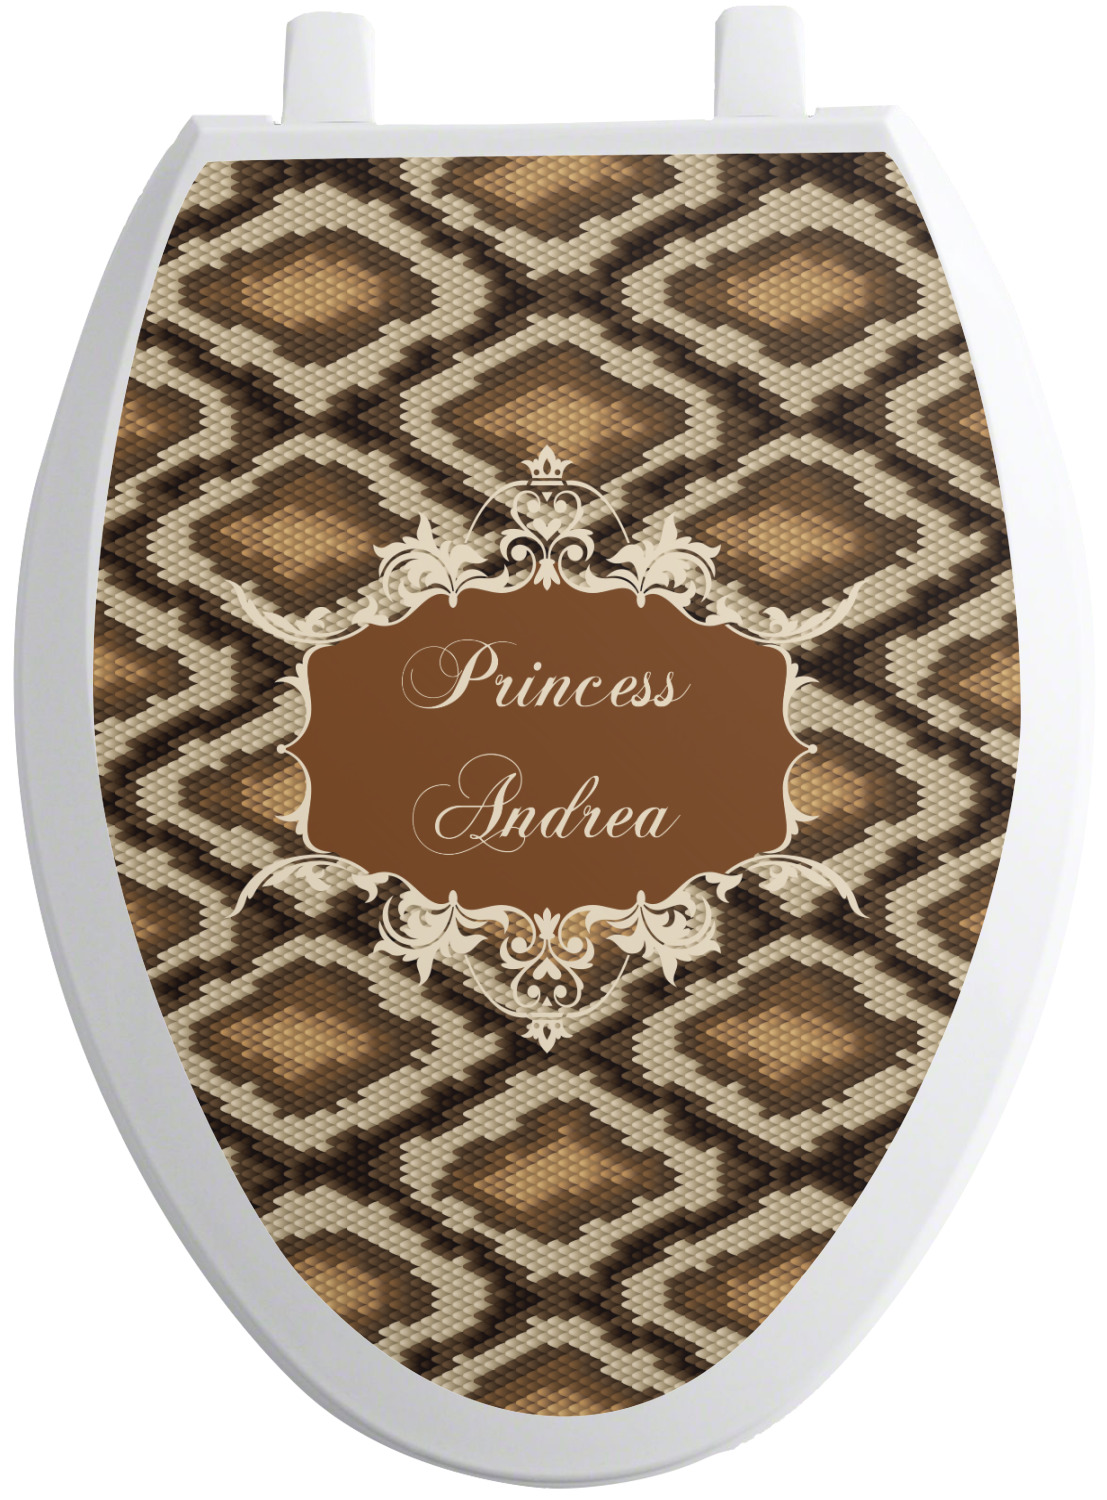 Wondrous Snake Skin Toilet Seat Decal Personalized Pdpeps Interior Chair Design Pdpepsorg